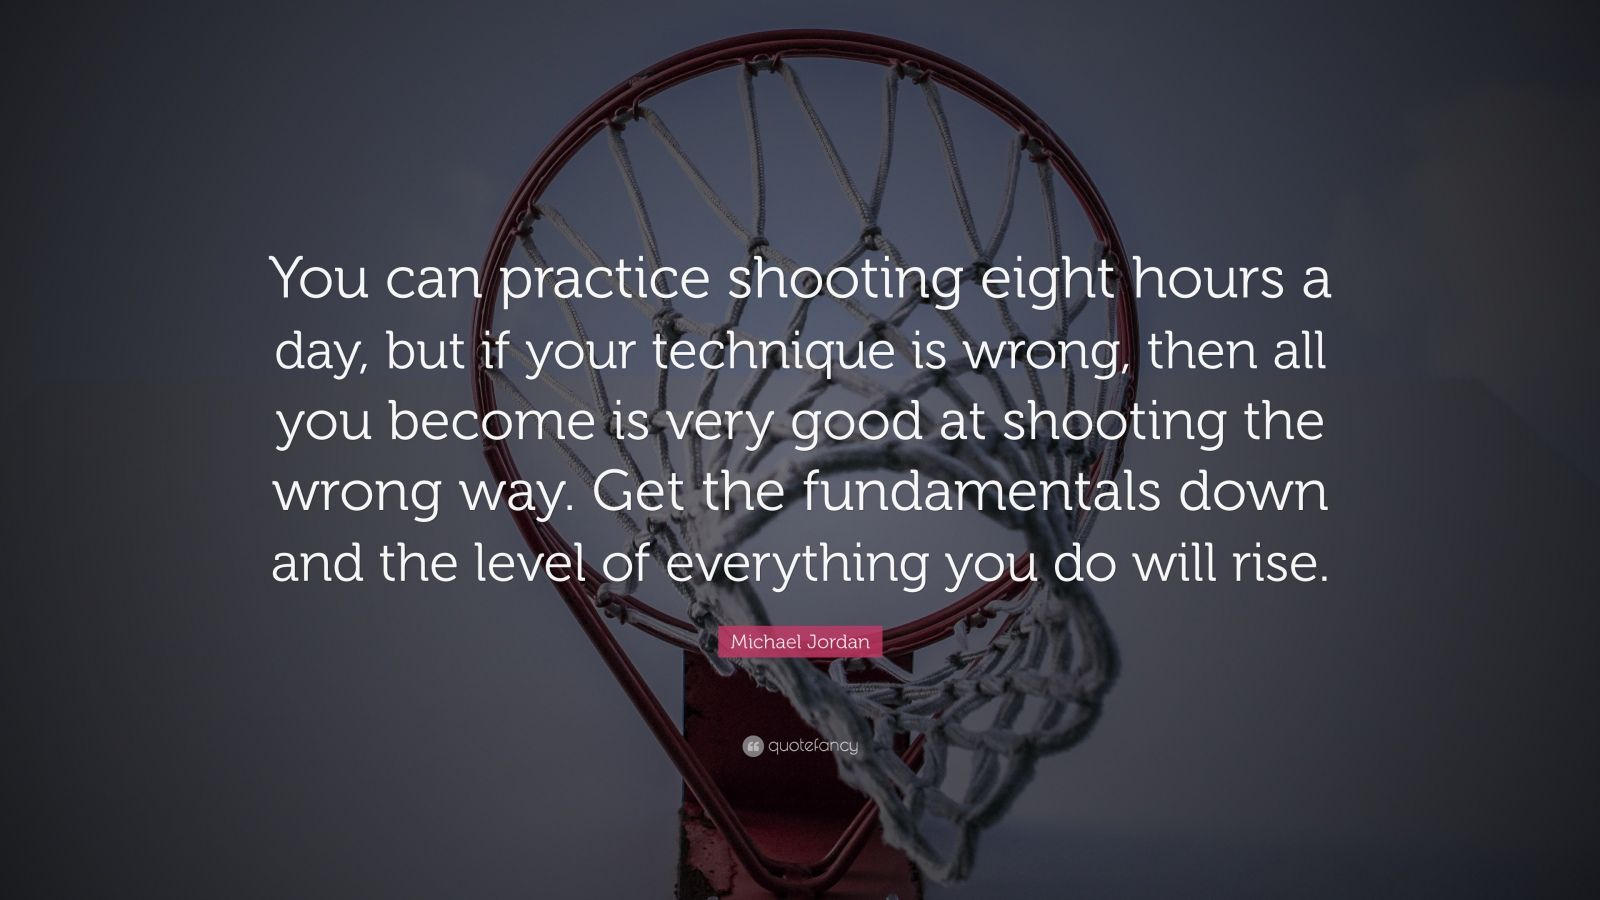 38466-Michael-Jordan-Quote-You-can-practice-shooting-eight-hours-a-day.jpg